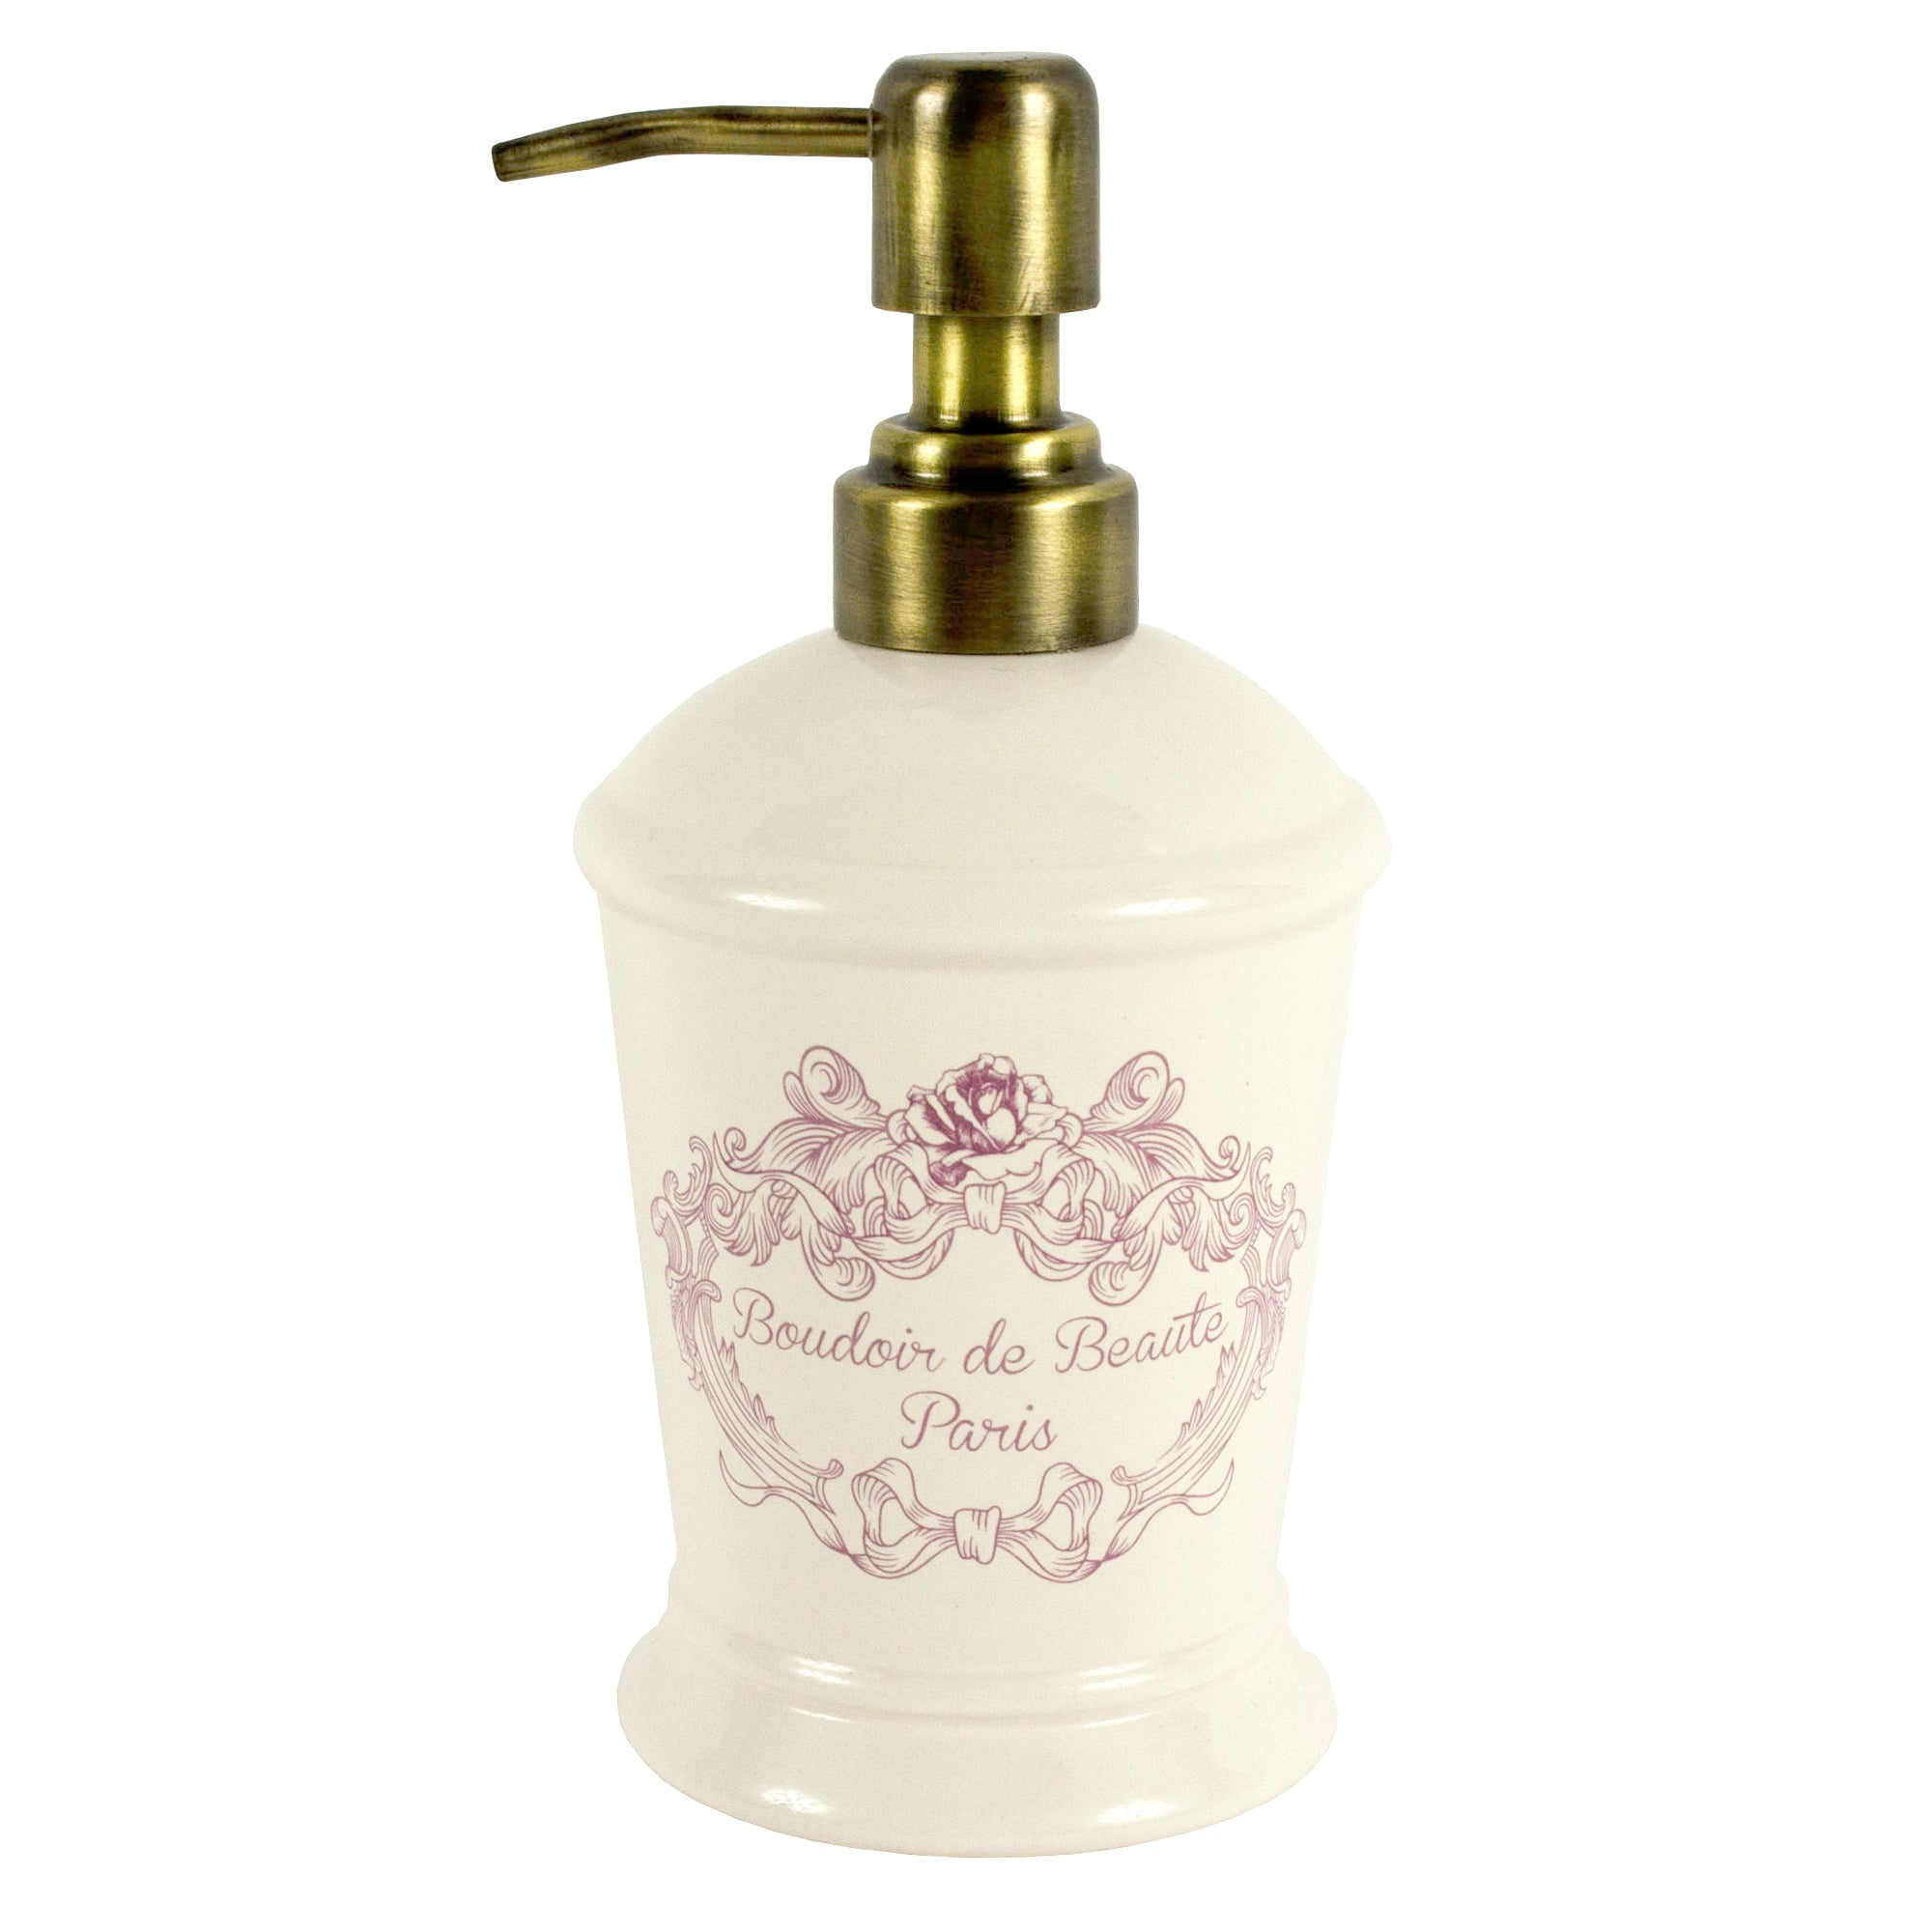 Boudoir Lotion Dispenser